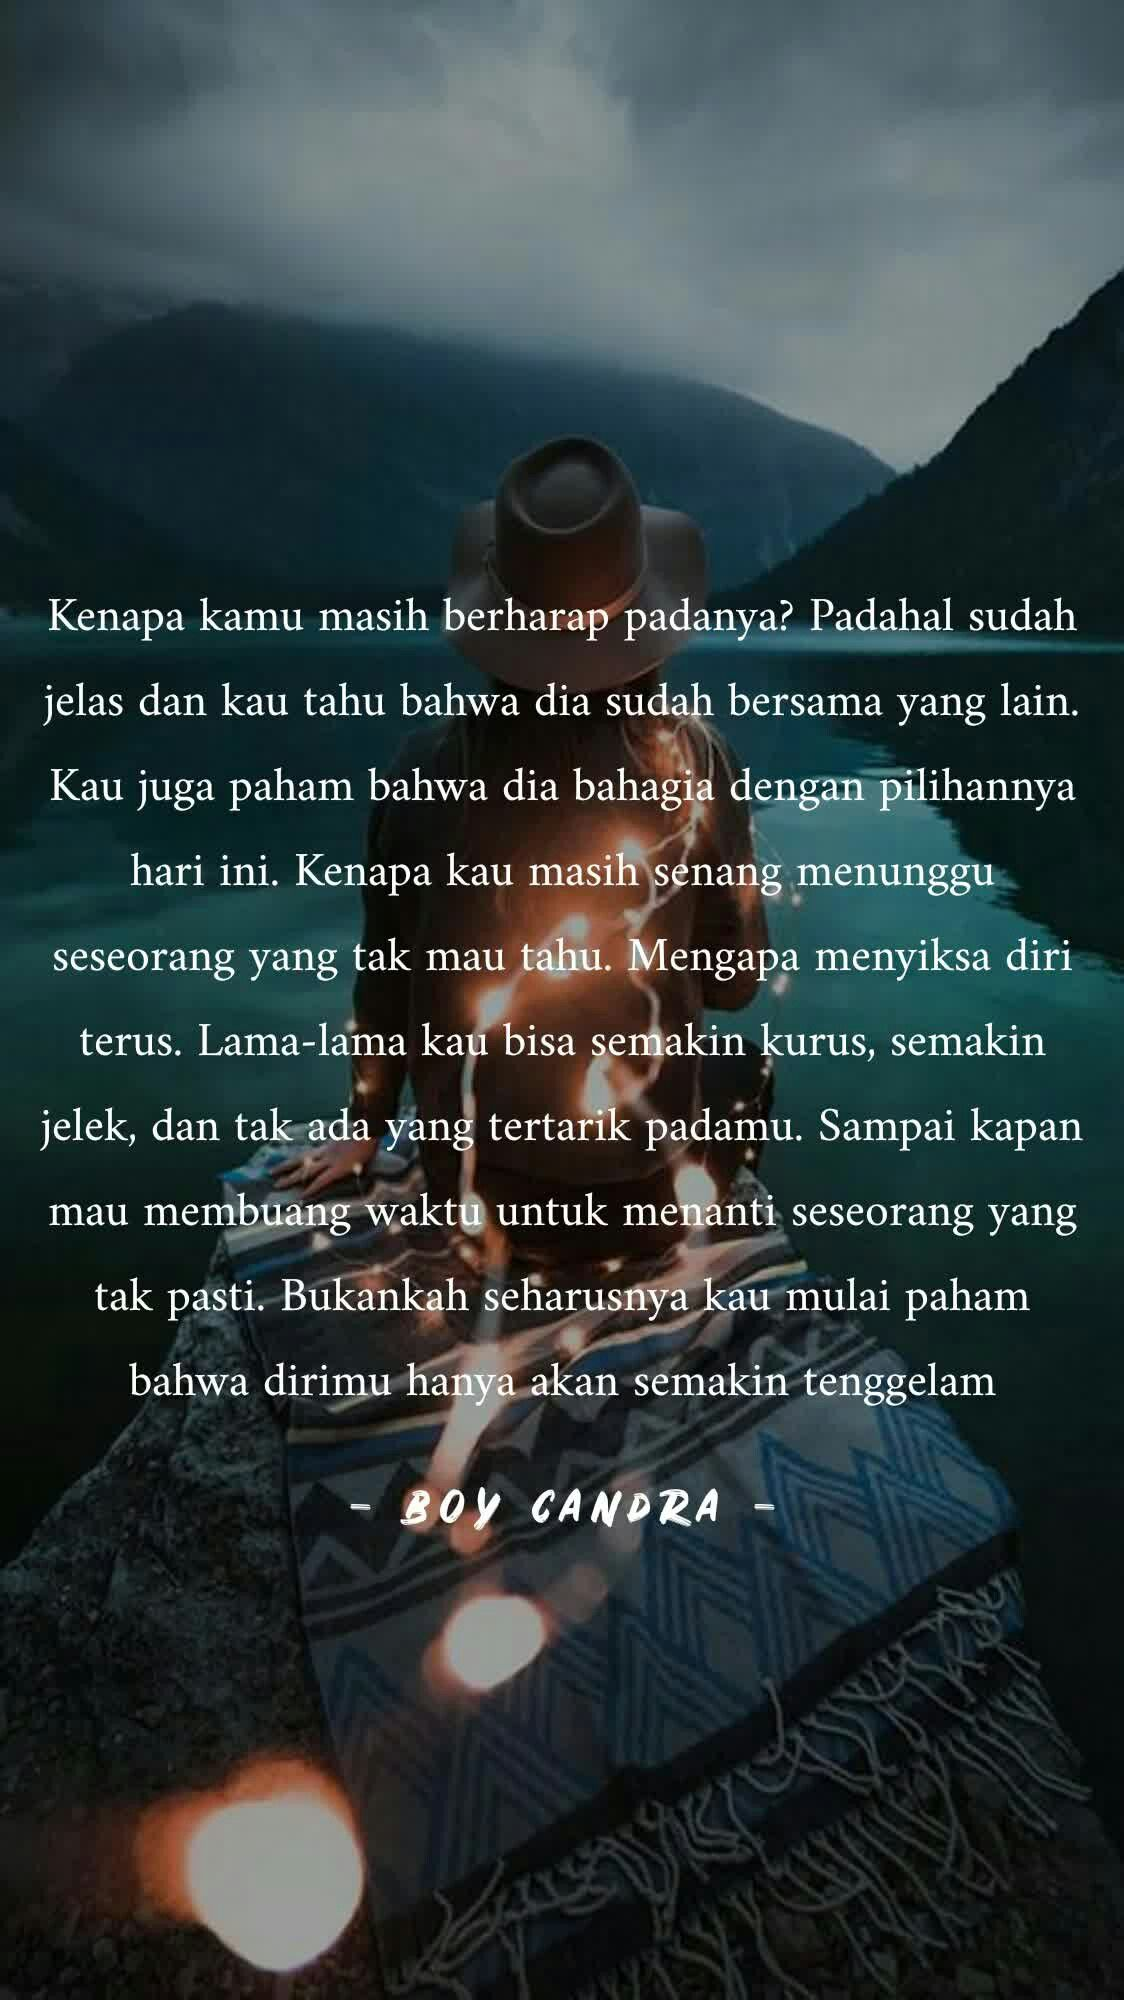 The Boy Candra Quotes Are The Most Complicated Love